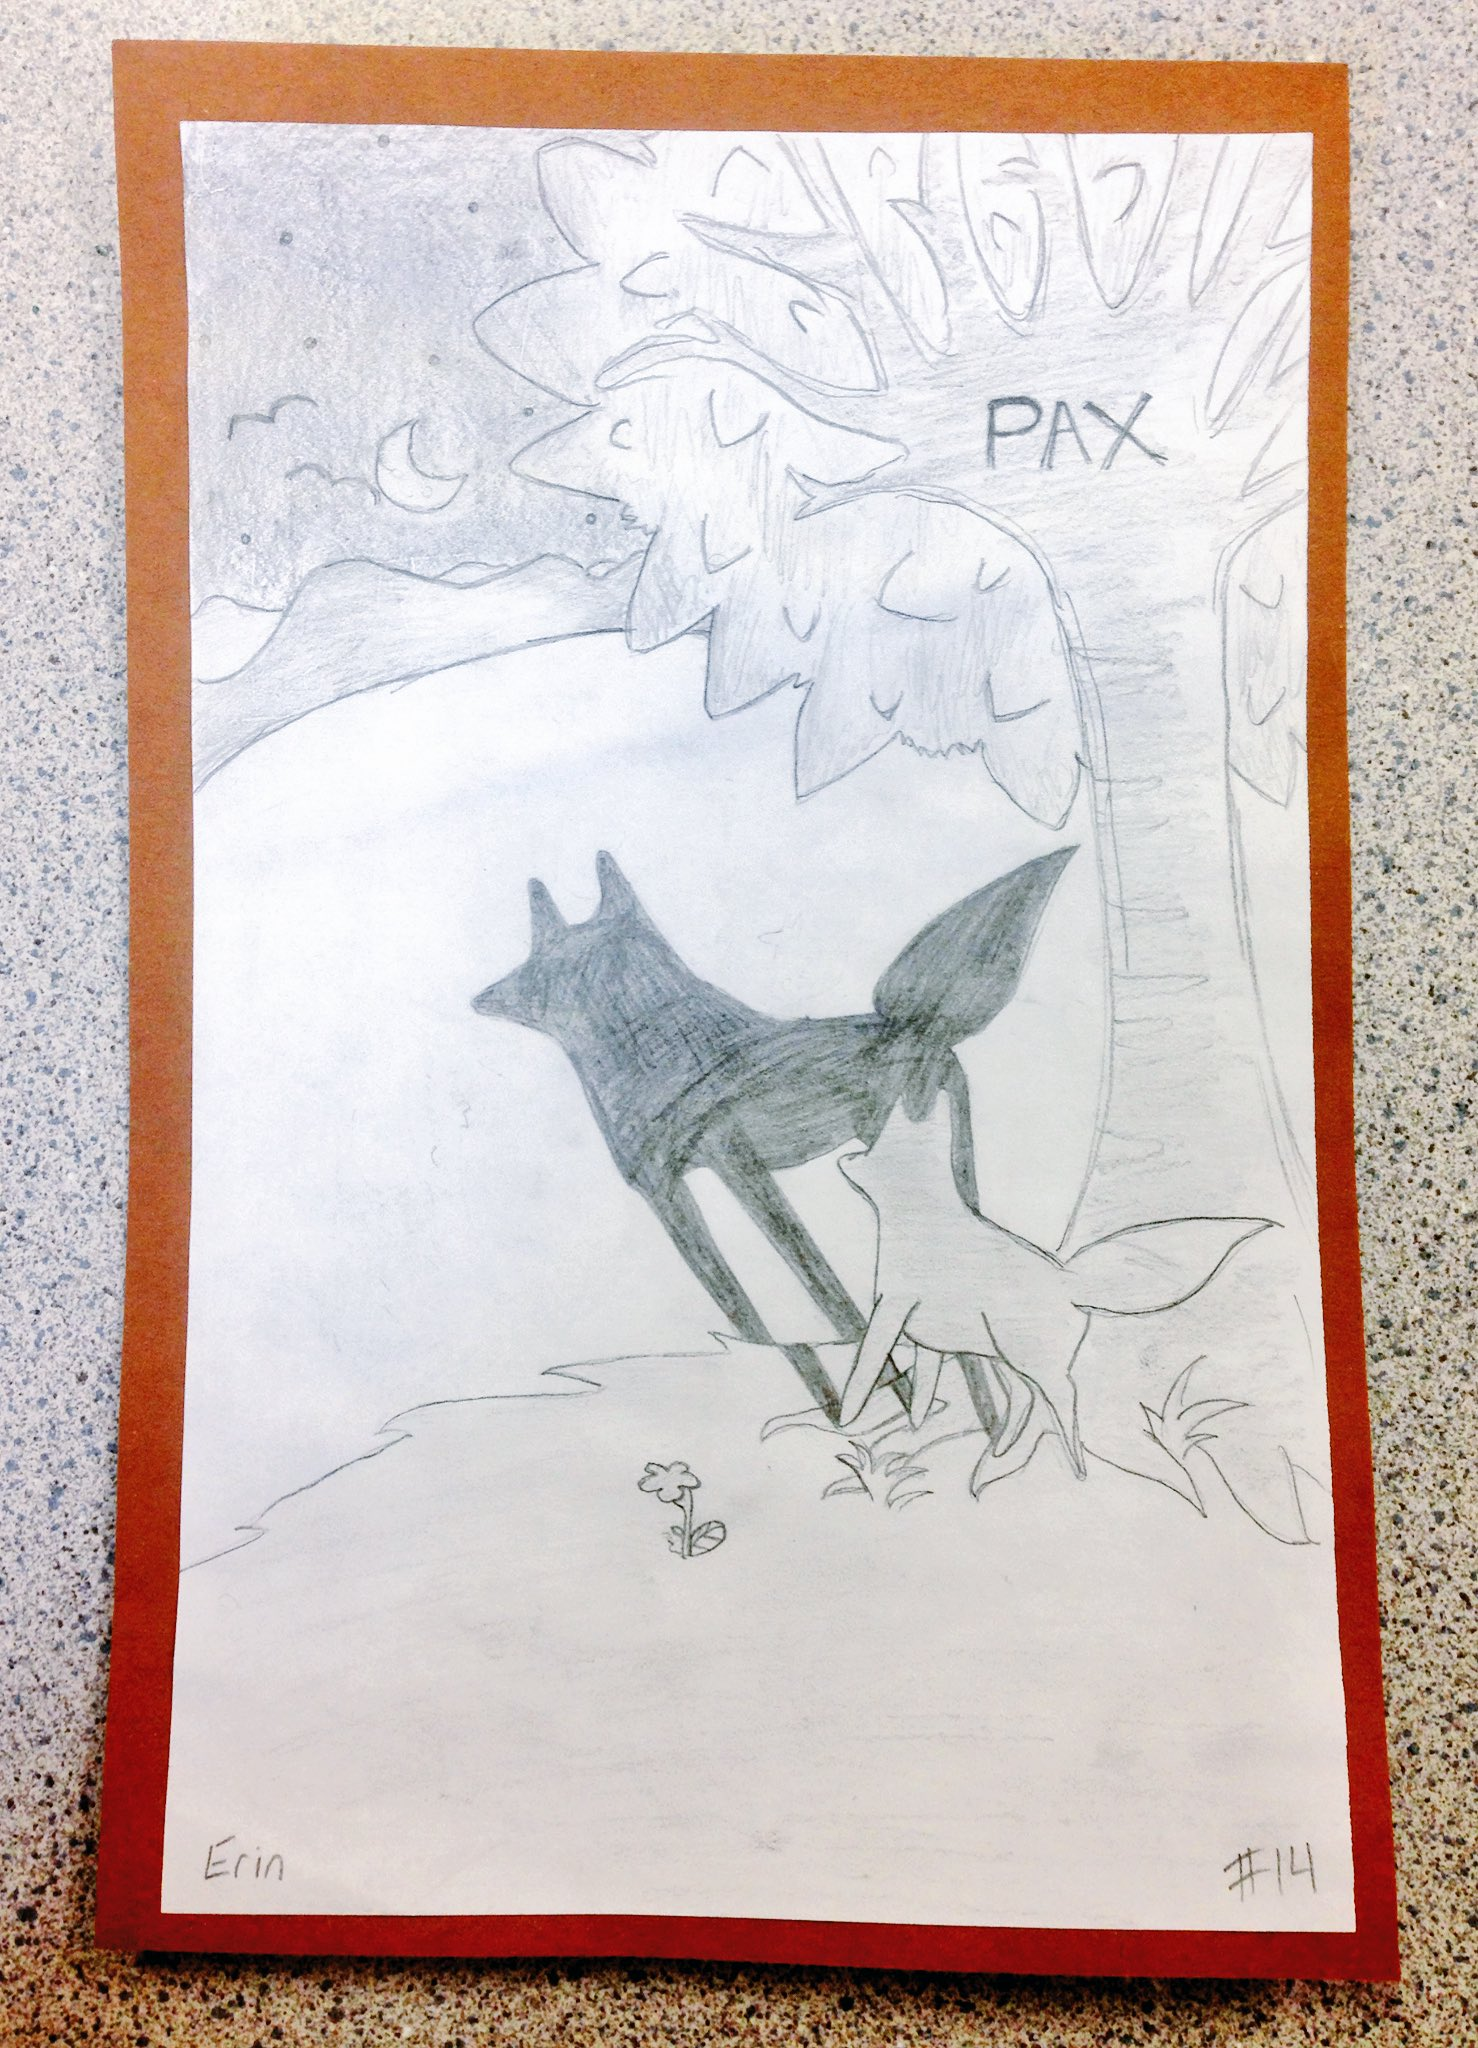 """""""Pax"""" art inspired by the photos throughout the novel. We incorporated shading and perspective. #GRAPax #GRA16 #SD36Learn #SullivanELearns https://t.co/G6viFUZ44Y"""